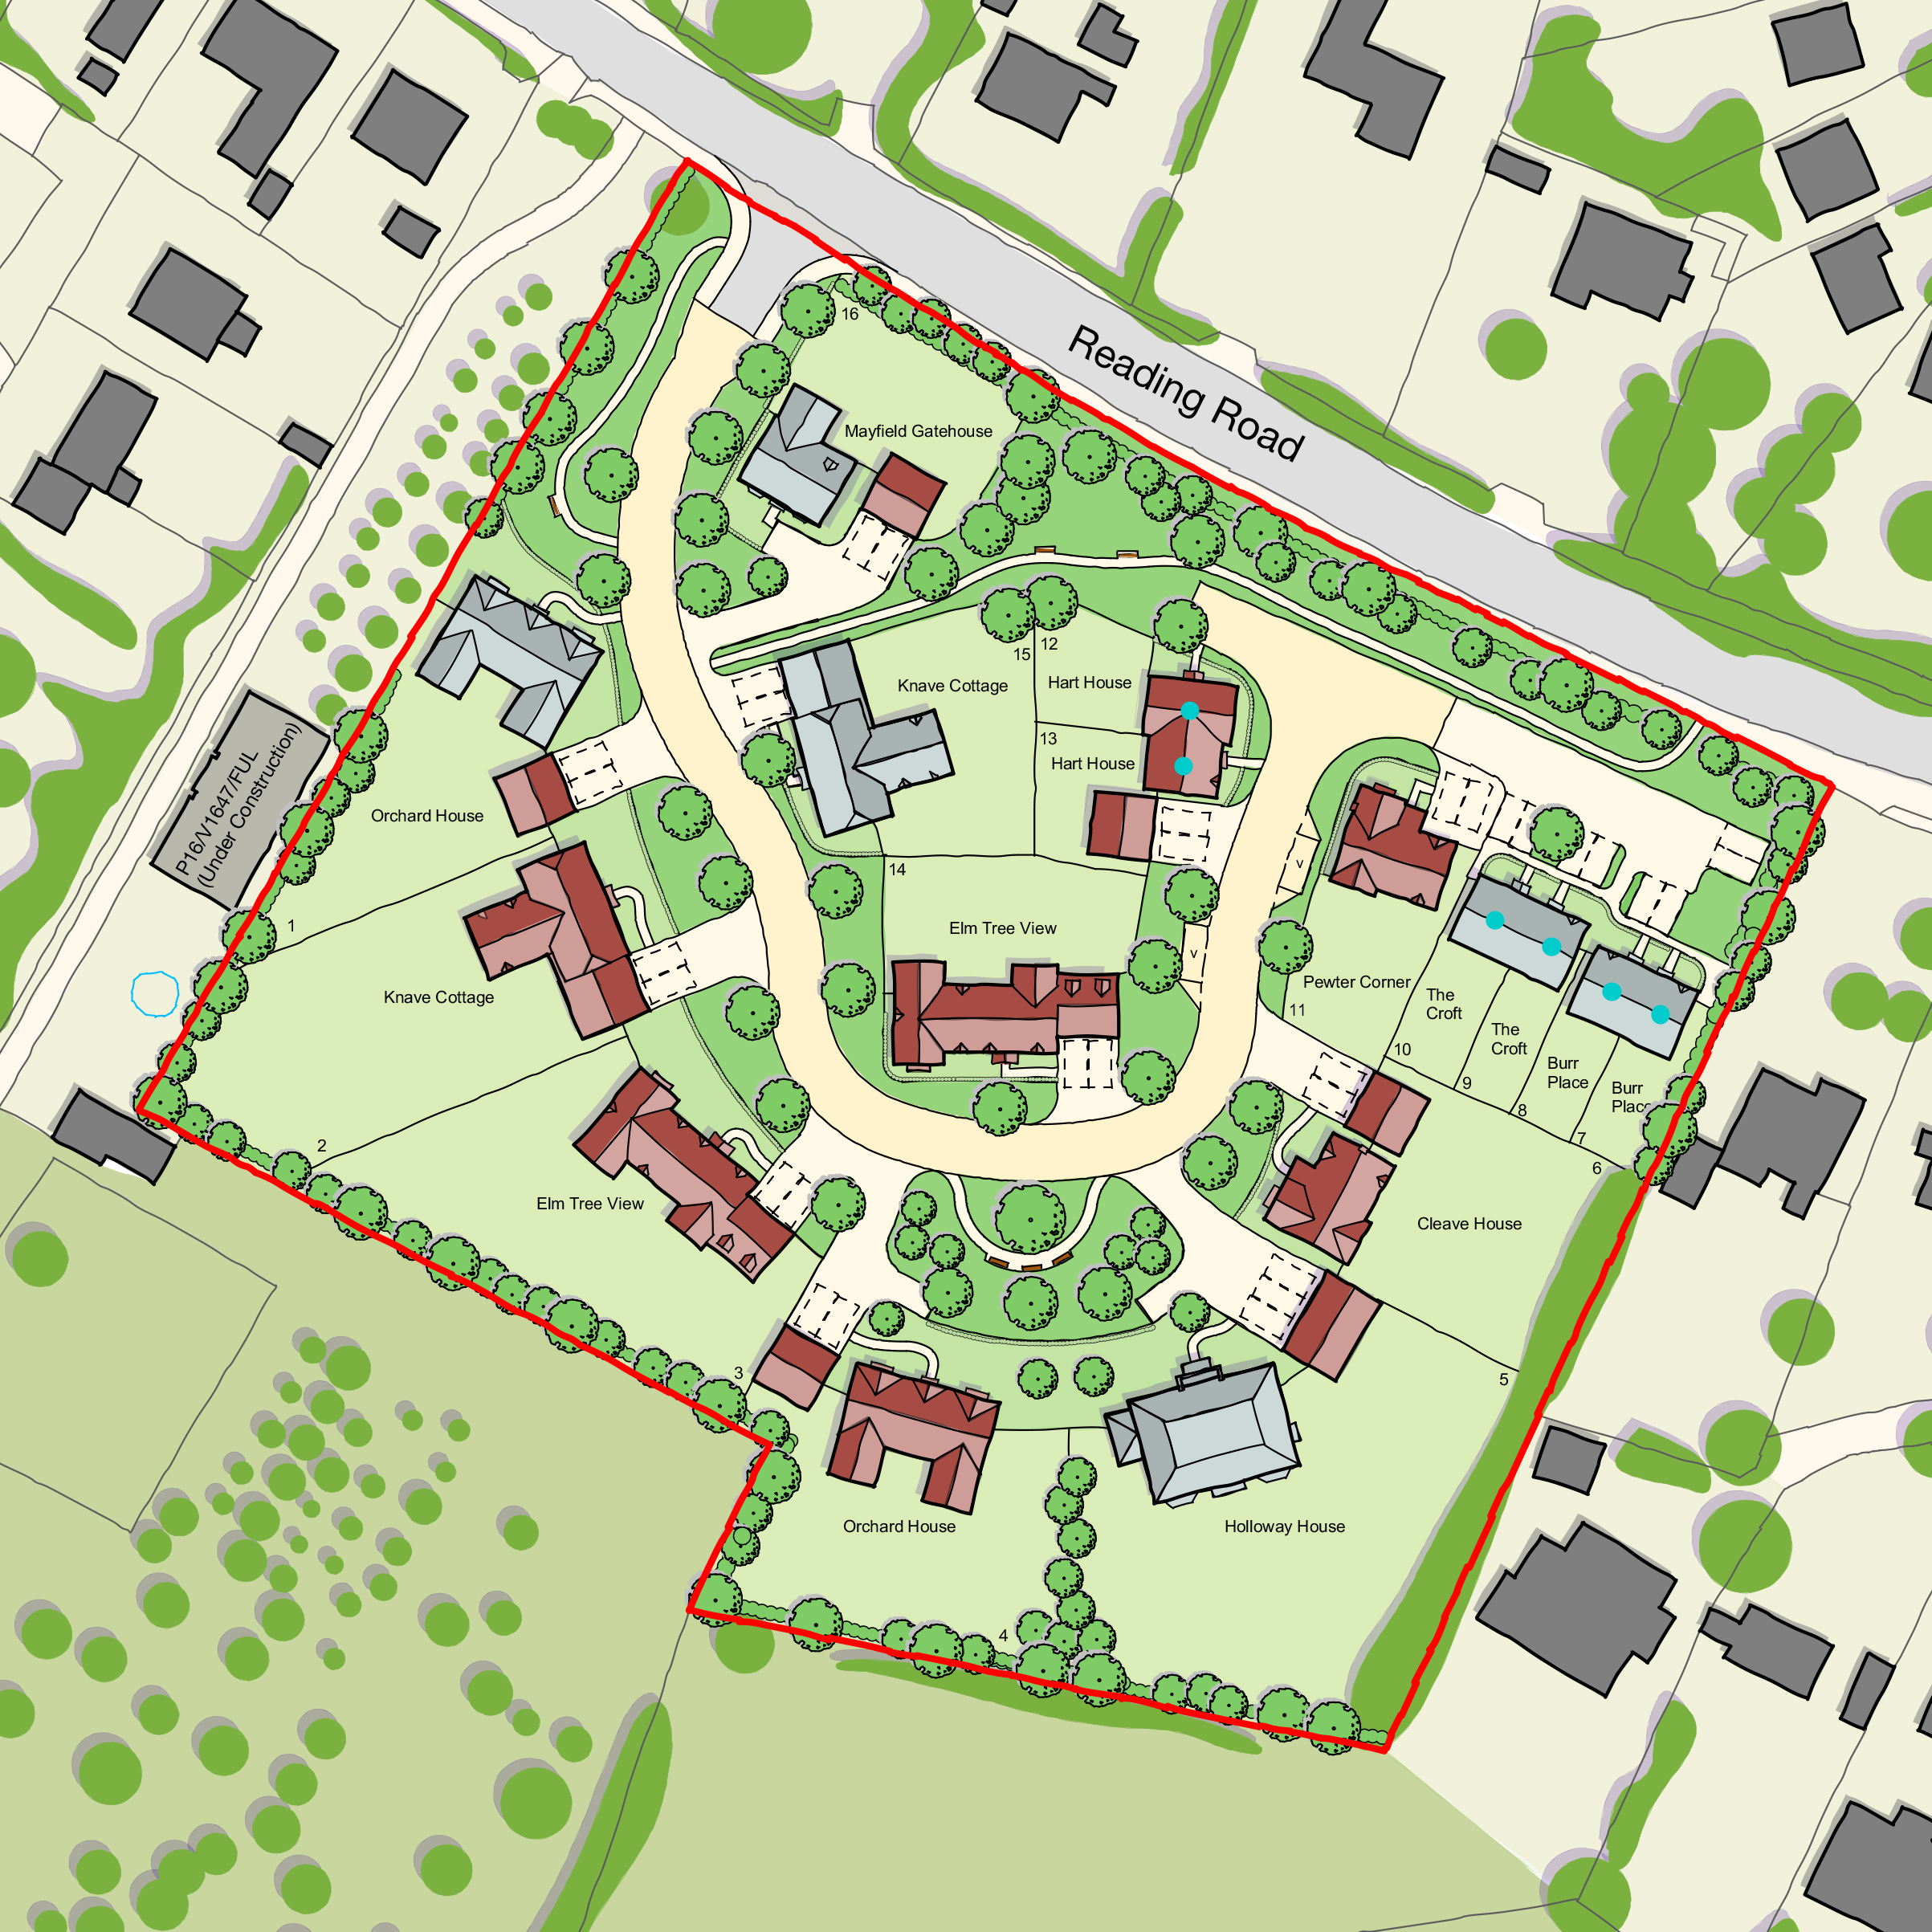 Ede Homes, Harwell, West Waddy, Architects, Town Planners, Urban Designers